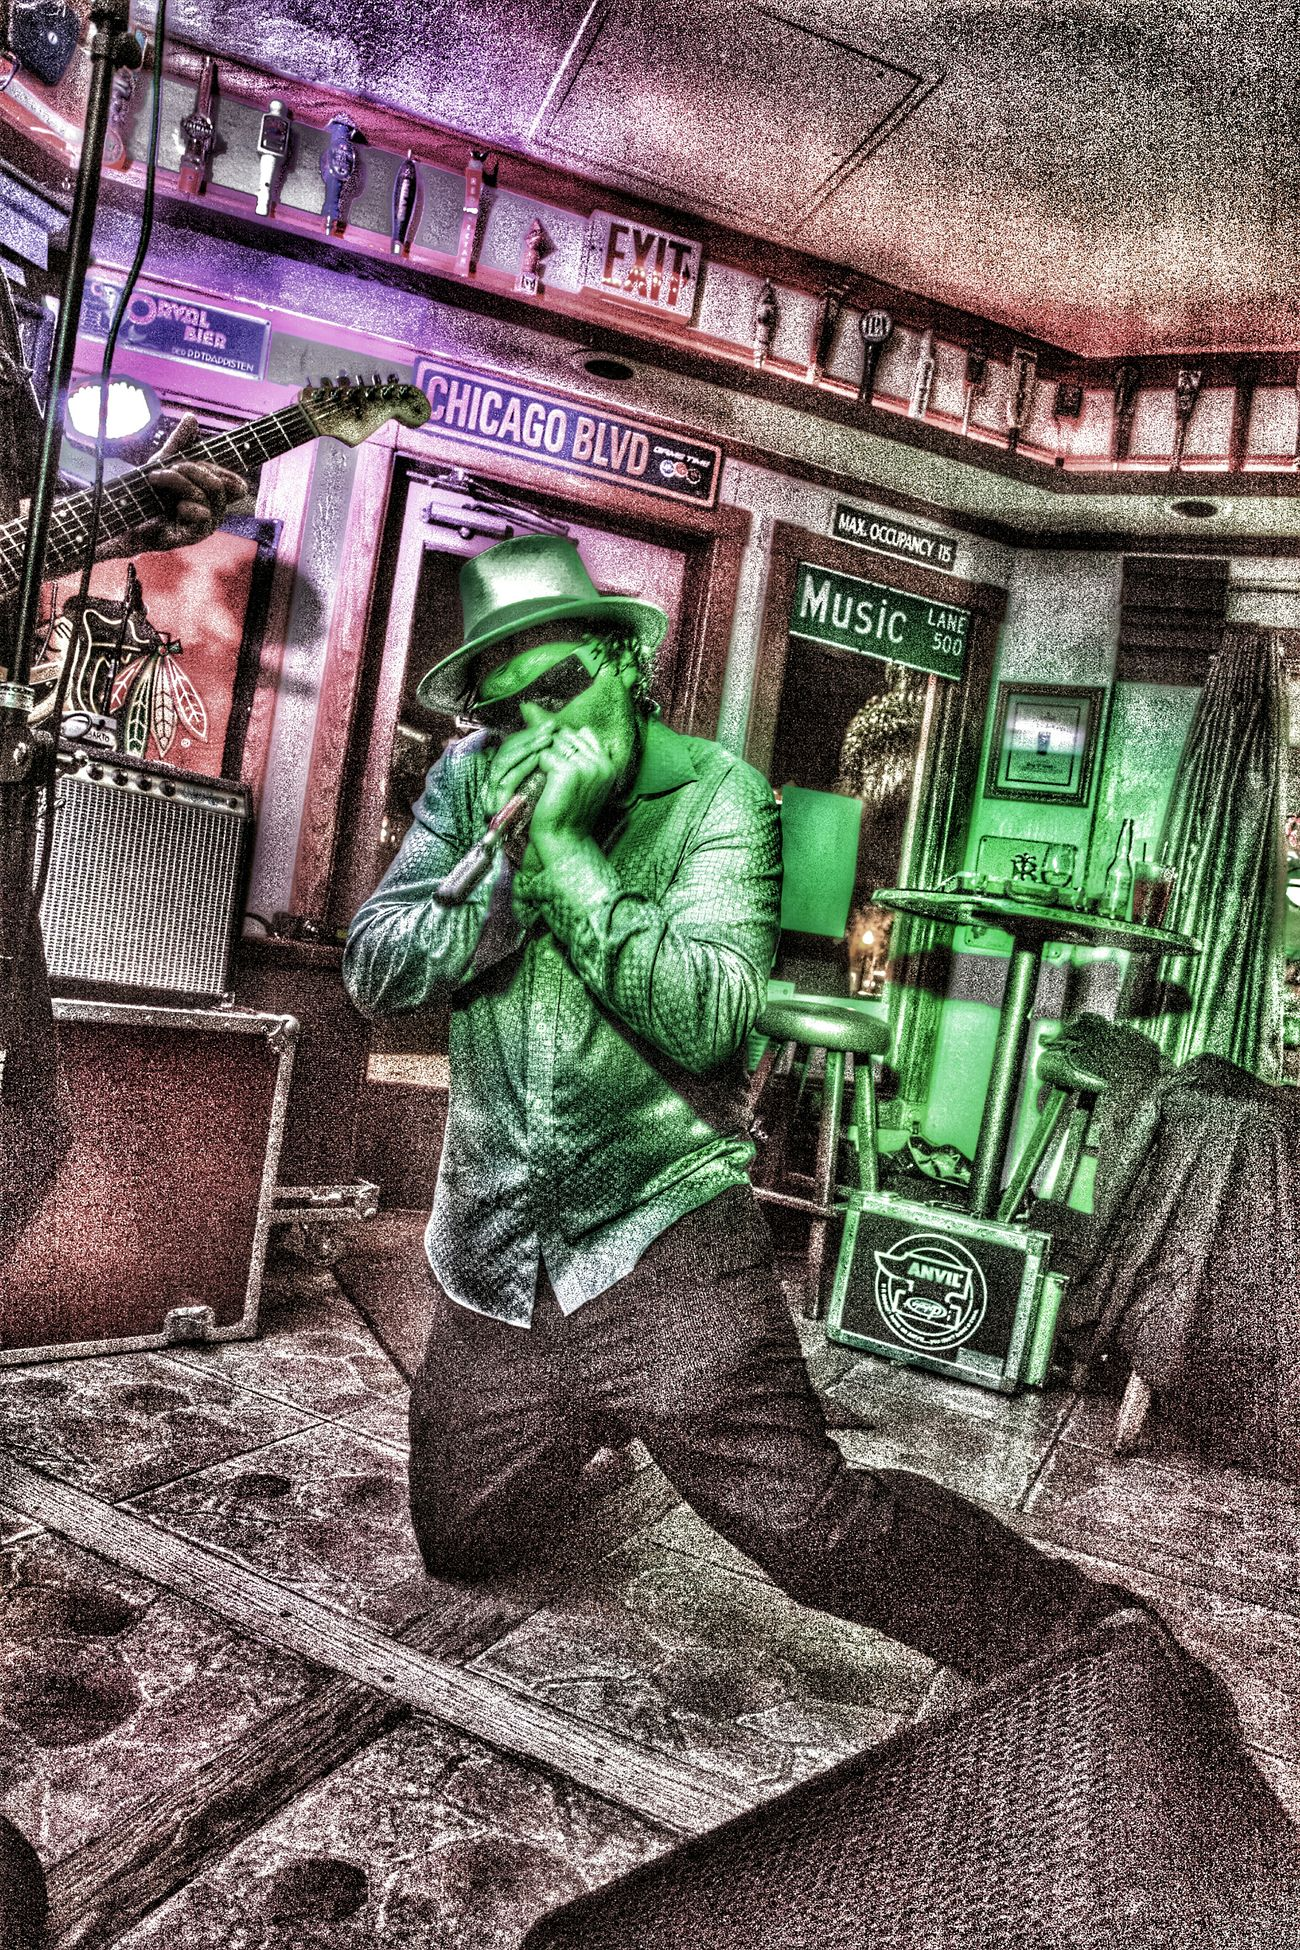 Zack cole special effects Taking Photos Enjoying Life Band Player San Diego Ca Special Effects